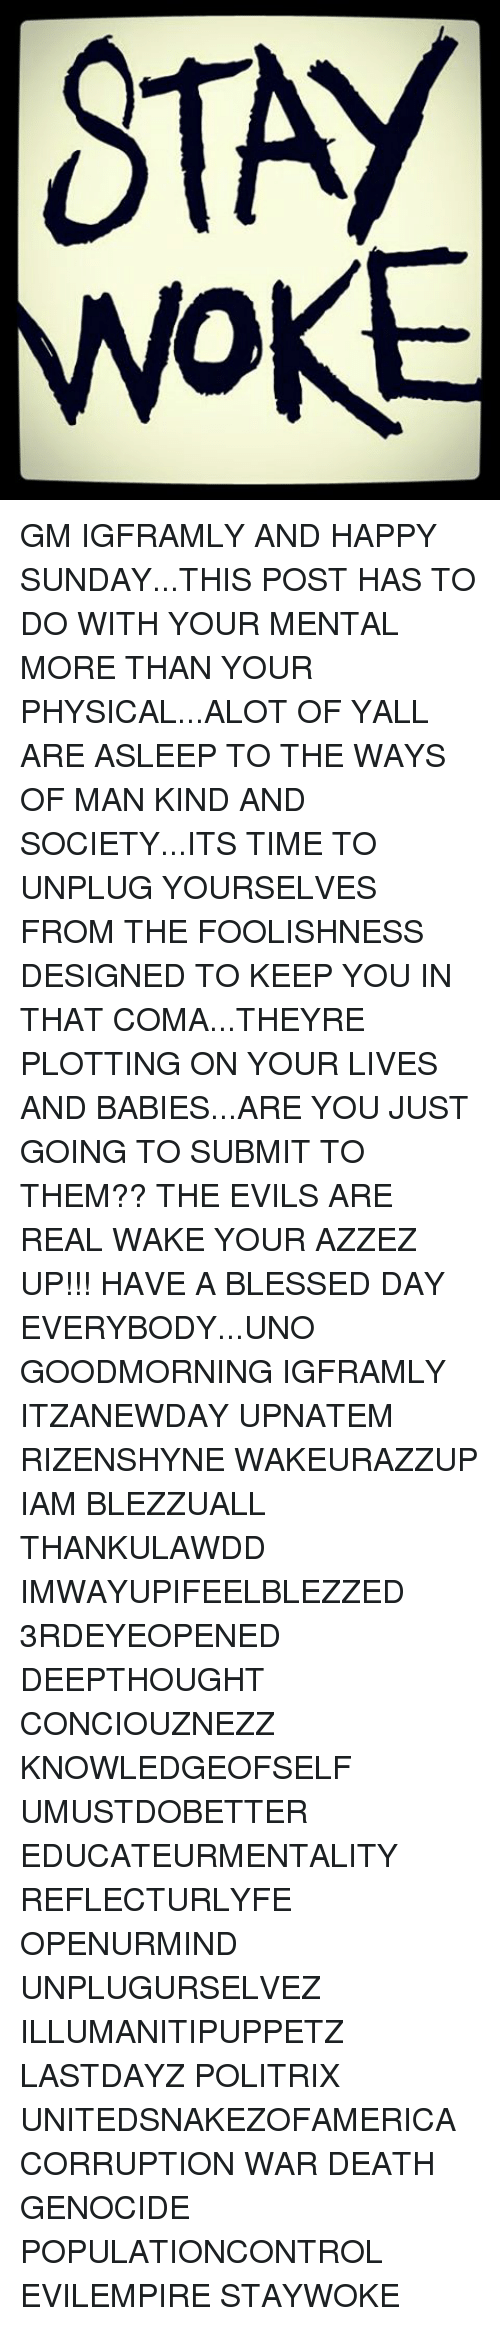 Having A Blessed Day: STAY GM IGFRAMLY AND HAPPY SUNDAY...THIS POST HAS TO DO WITH YOUR MENTAL MORE THAN YOUR PHYSICAL...ALOT OF YALL ARE ASLEEP TO THE WAYS OF MAN KIND AND SOCIETY...ITS TIME TO UNPLUG YOURSELVES FROM THE FOOLISHNESS DESIGNED TO KEEP YOU IN THAT COMA...THEYRE PLOTTING ON YOUR LIVES AND BABIES...ARE YOU JUST GOING TO SUBMIT TO THEM?? THE EVILS ARE REAL WAKE YOUR AZZEZ UP!!! HAVE A BLESSED DAY EVERYBODY...UNO GOODMORNING IGFRAMLY ITZANEWDAY UPNATEM RIZENSHYNE WAKEURAZZUP IAM BLEZZUALL THANKULAWDD IMWAYUPIFEELBLEZZED 3RDEYEOPENED DEEPTHOUGHT CONCIOUZNEZZ KNOWLEDGEOFSELF UMUSTDOBETTER EDUCATEURMENTALITY REFLECTURLYFE OPENURMIND UNPLUGURSELVEZ ILLUMANITIPUPPETZ LASTDAYZ POLITRIX UNITEDSNAKEZOFAMERICA CORRUPTION WAR DEATH GENOCIDE POPULATIONCONTROL EVILEMPIRE STAYWOKE